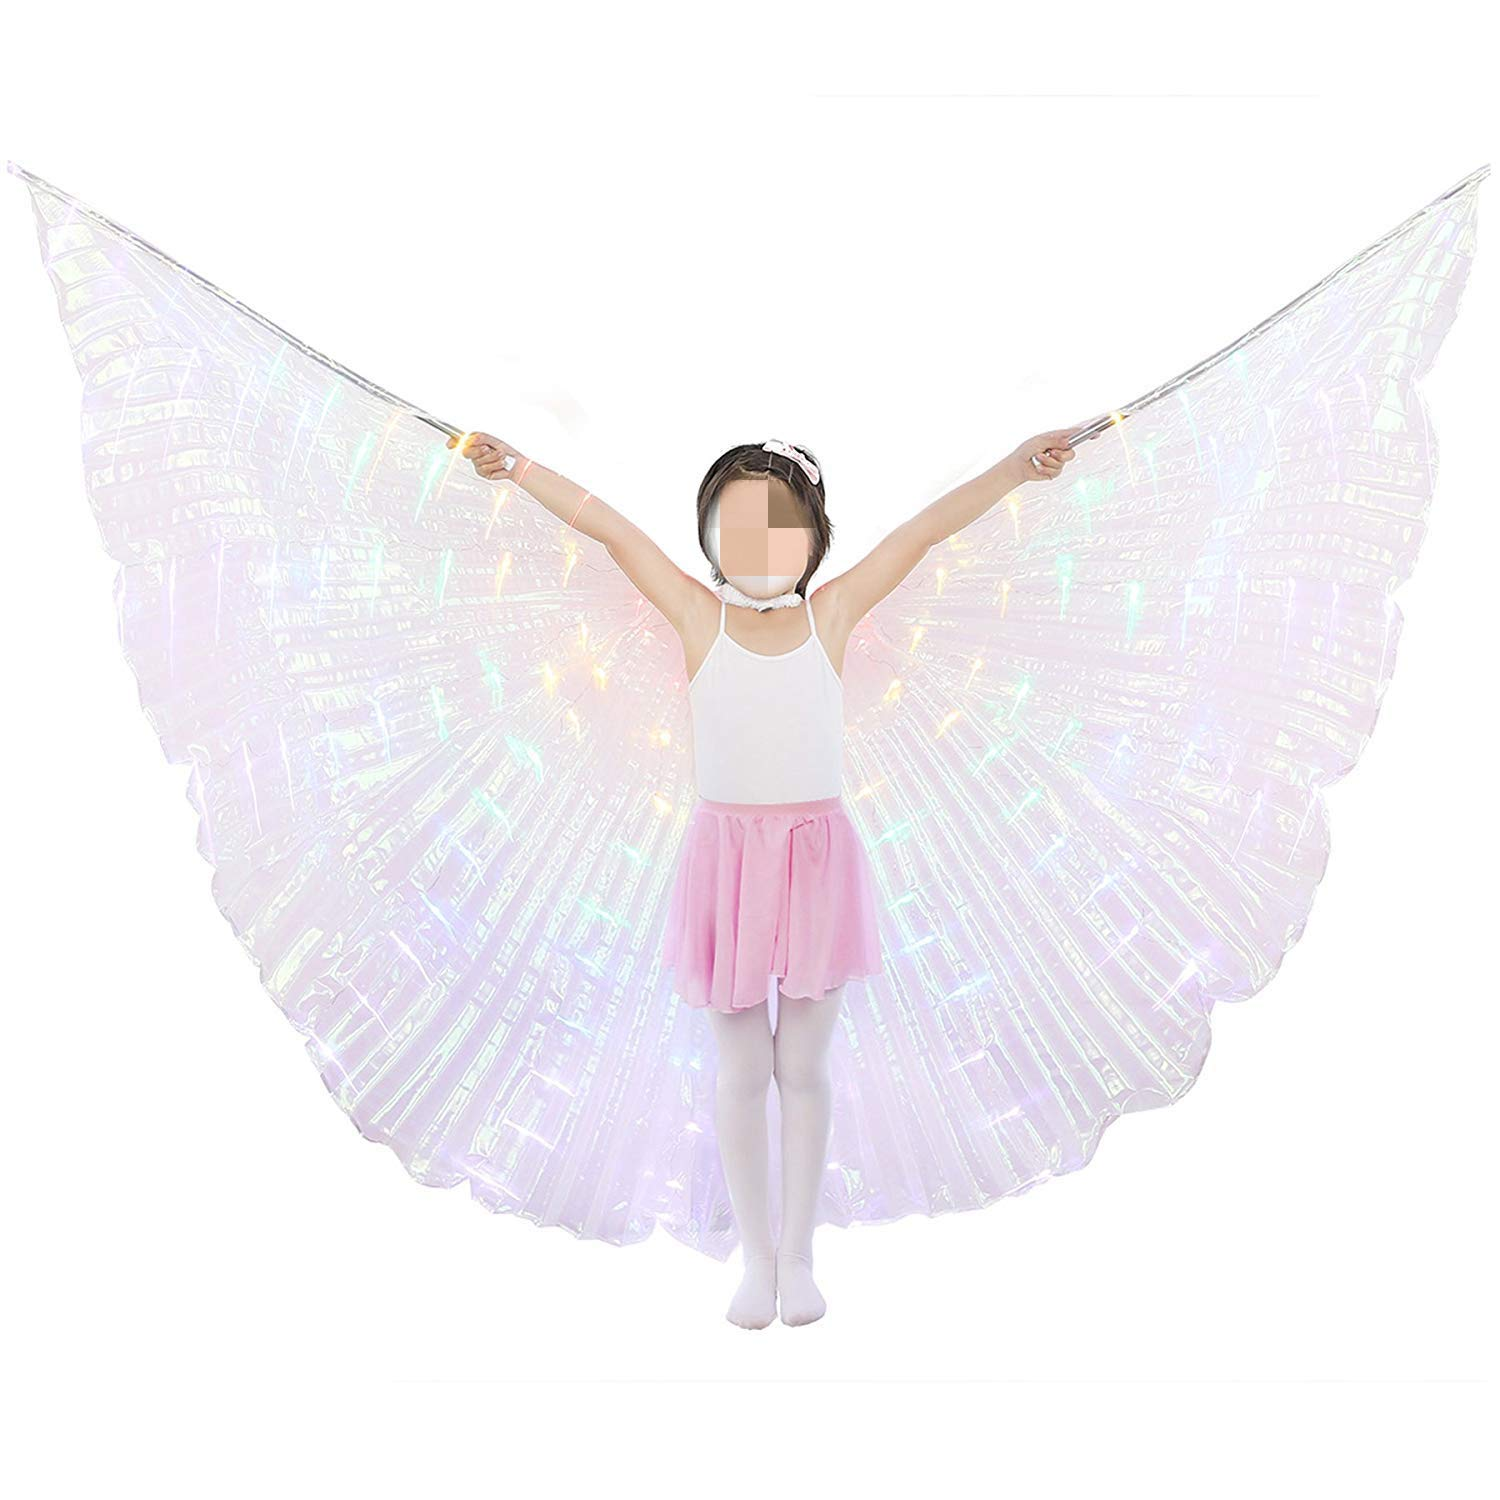 xiaoxiaoland εїз Belly Dance Wing with Rods-360 Degree Angel Wings with Portable Telescopic Sticks for Adults and Child,Colorful-child by xiaoxiaoland